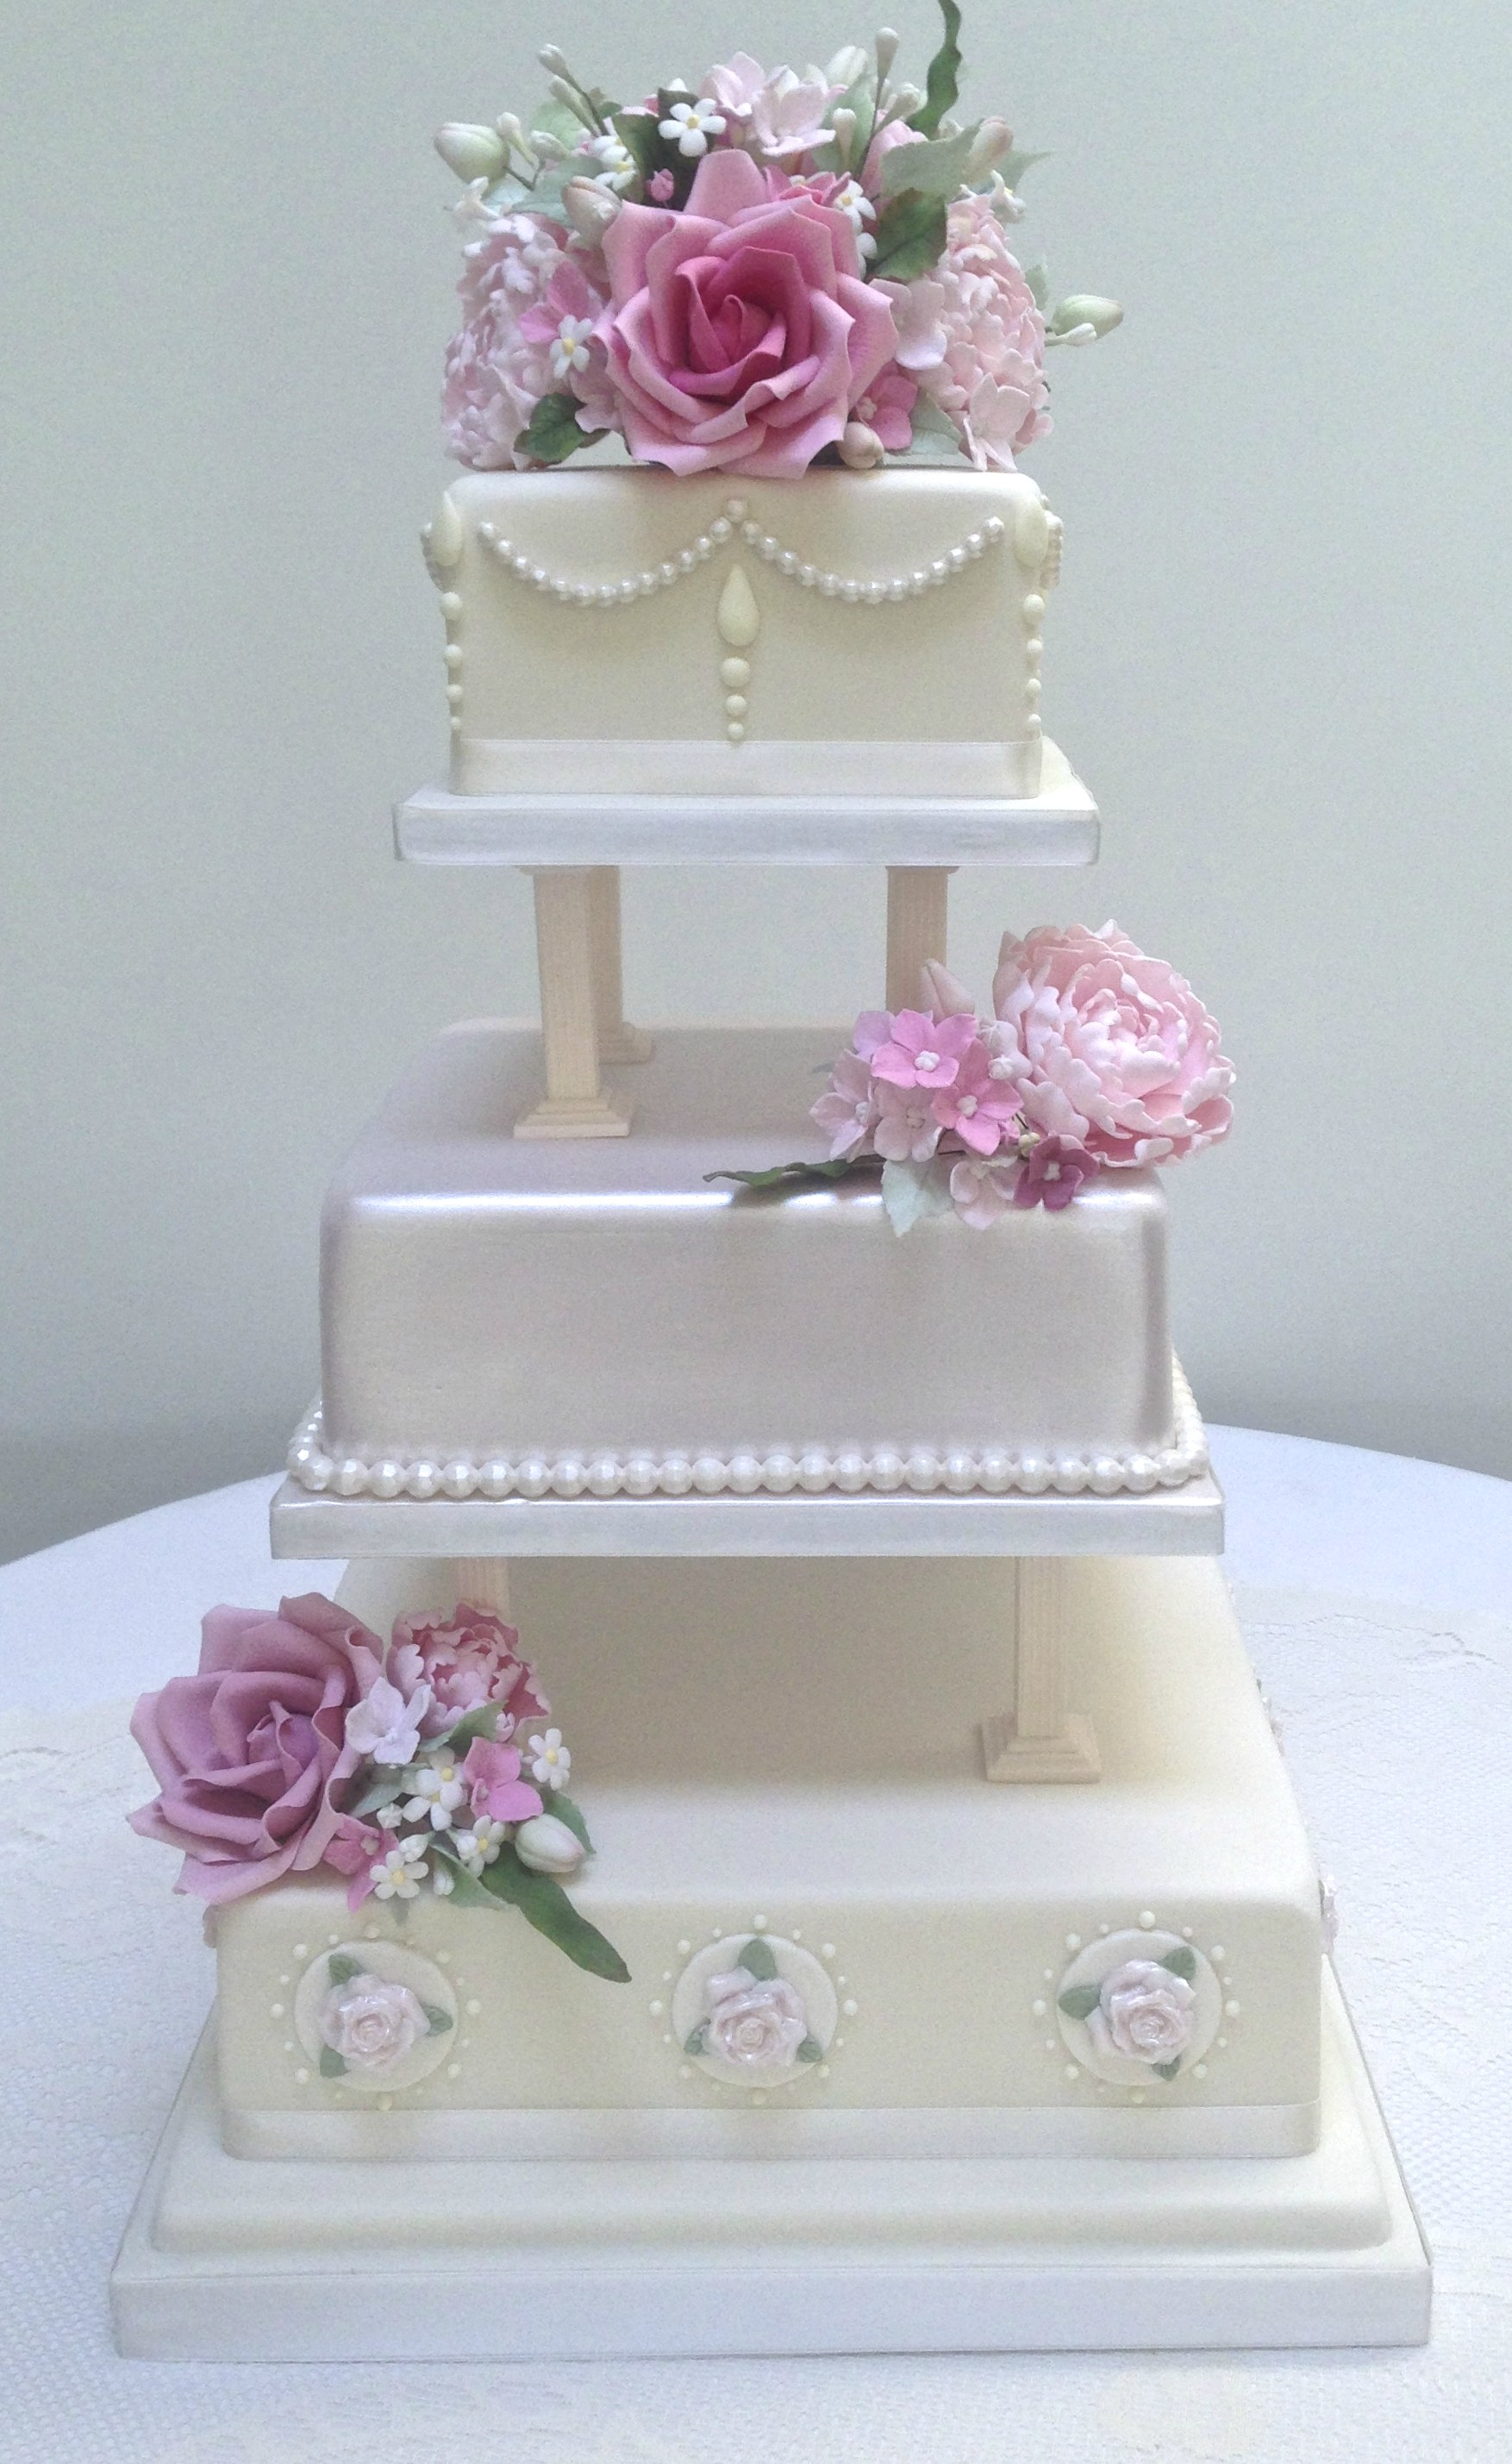 Magnificent 3 Tier wedding cake